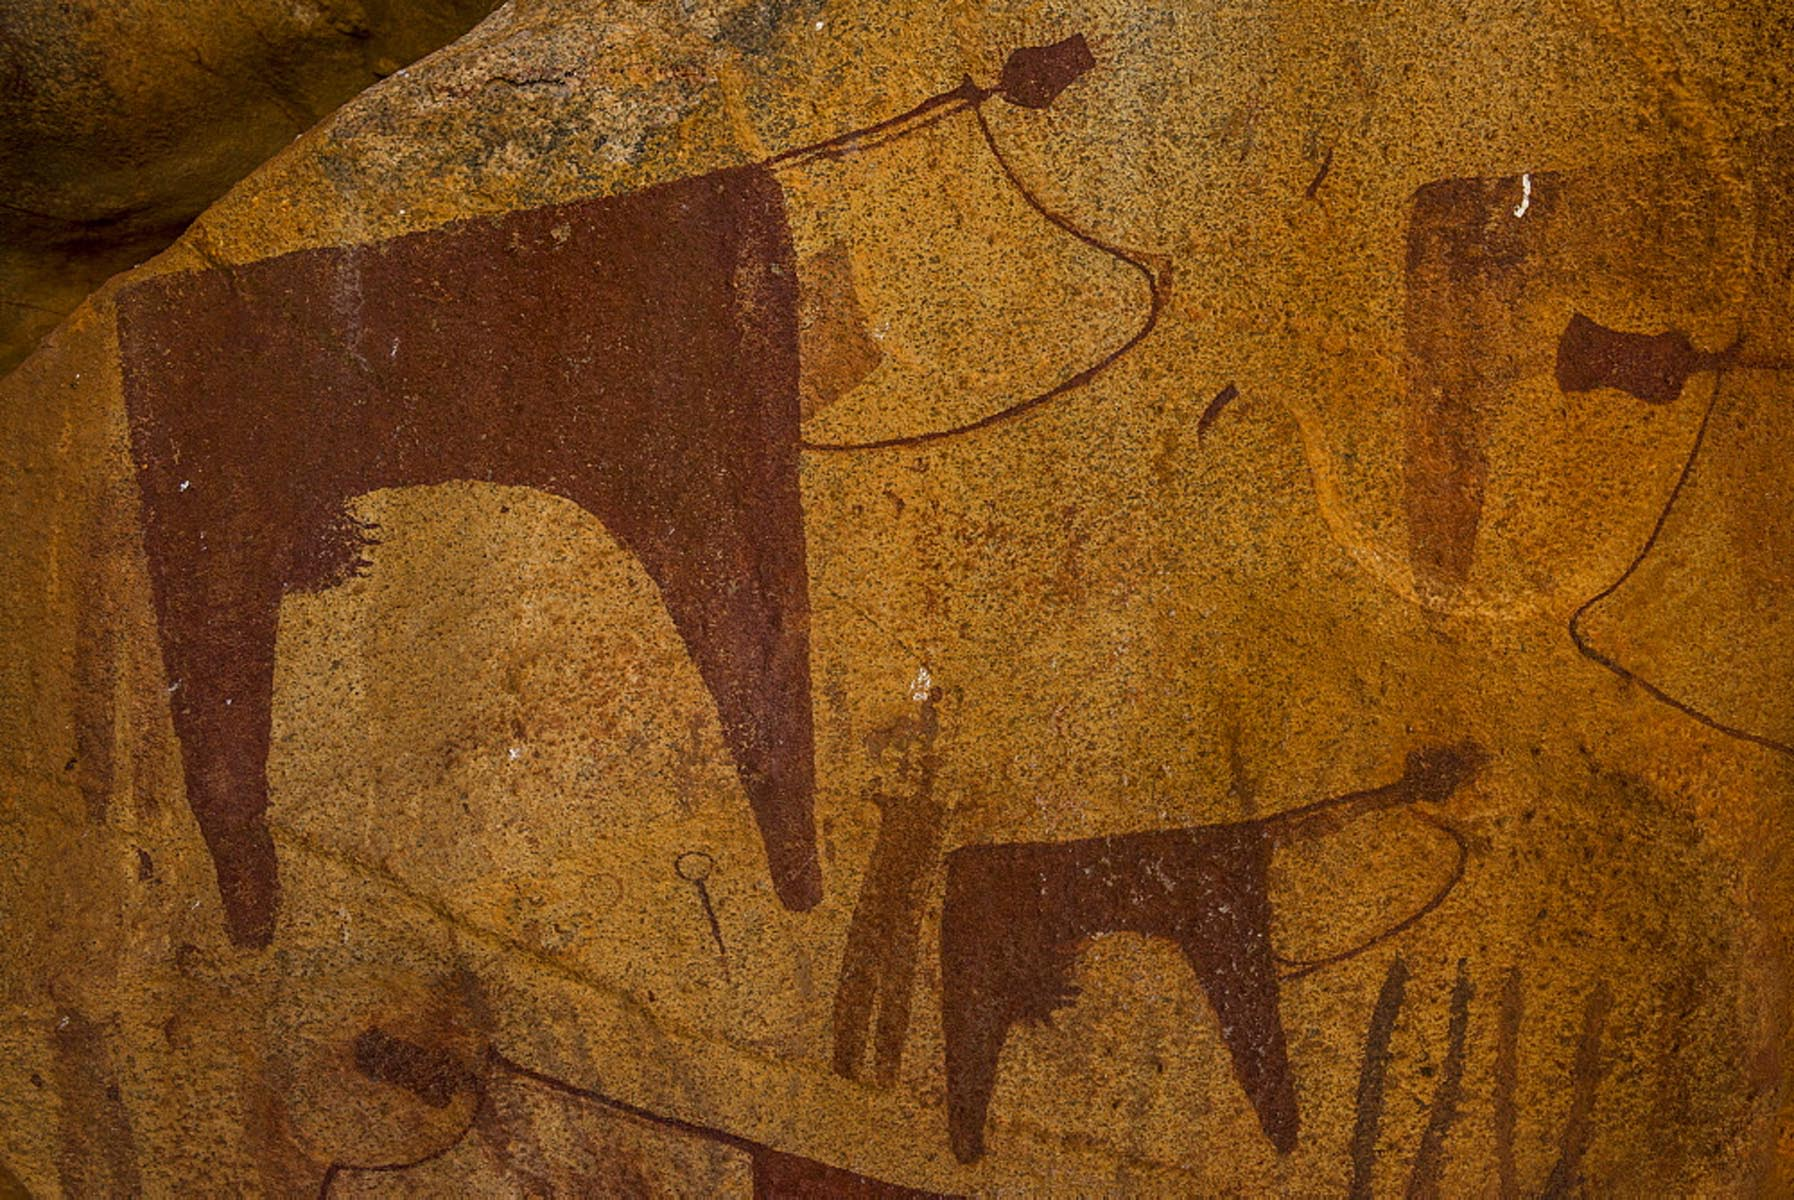 Cave paintings in Lass Geel caves, Somaliland, Somalia